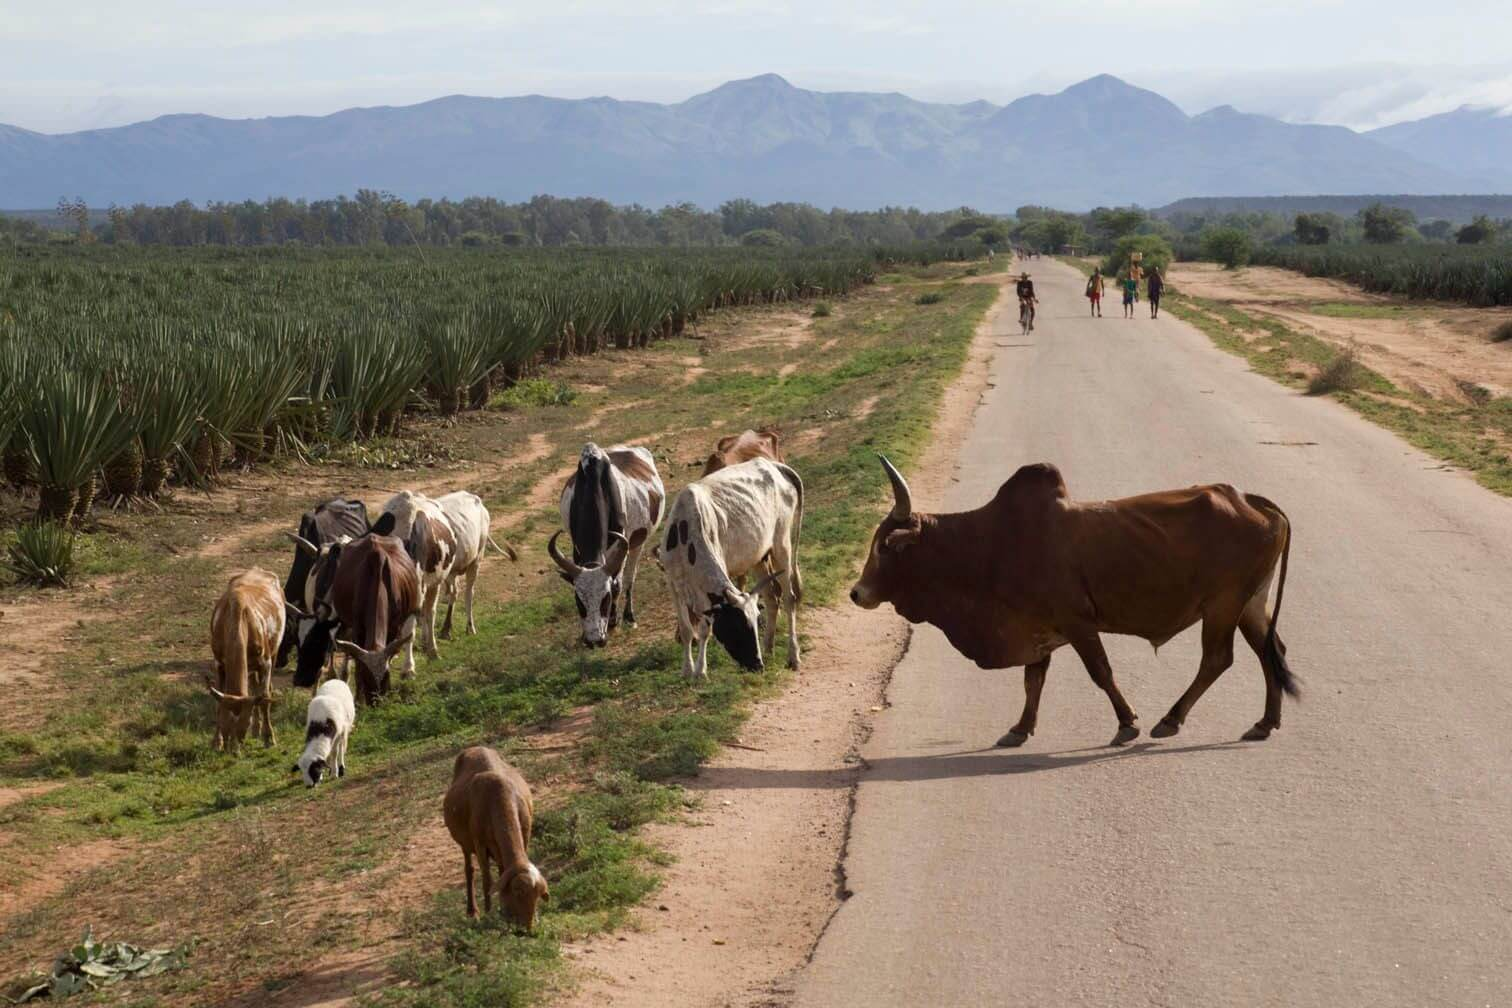 General_2010_Zebu_crossing_road_EK.jpg